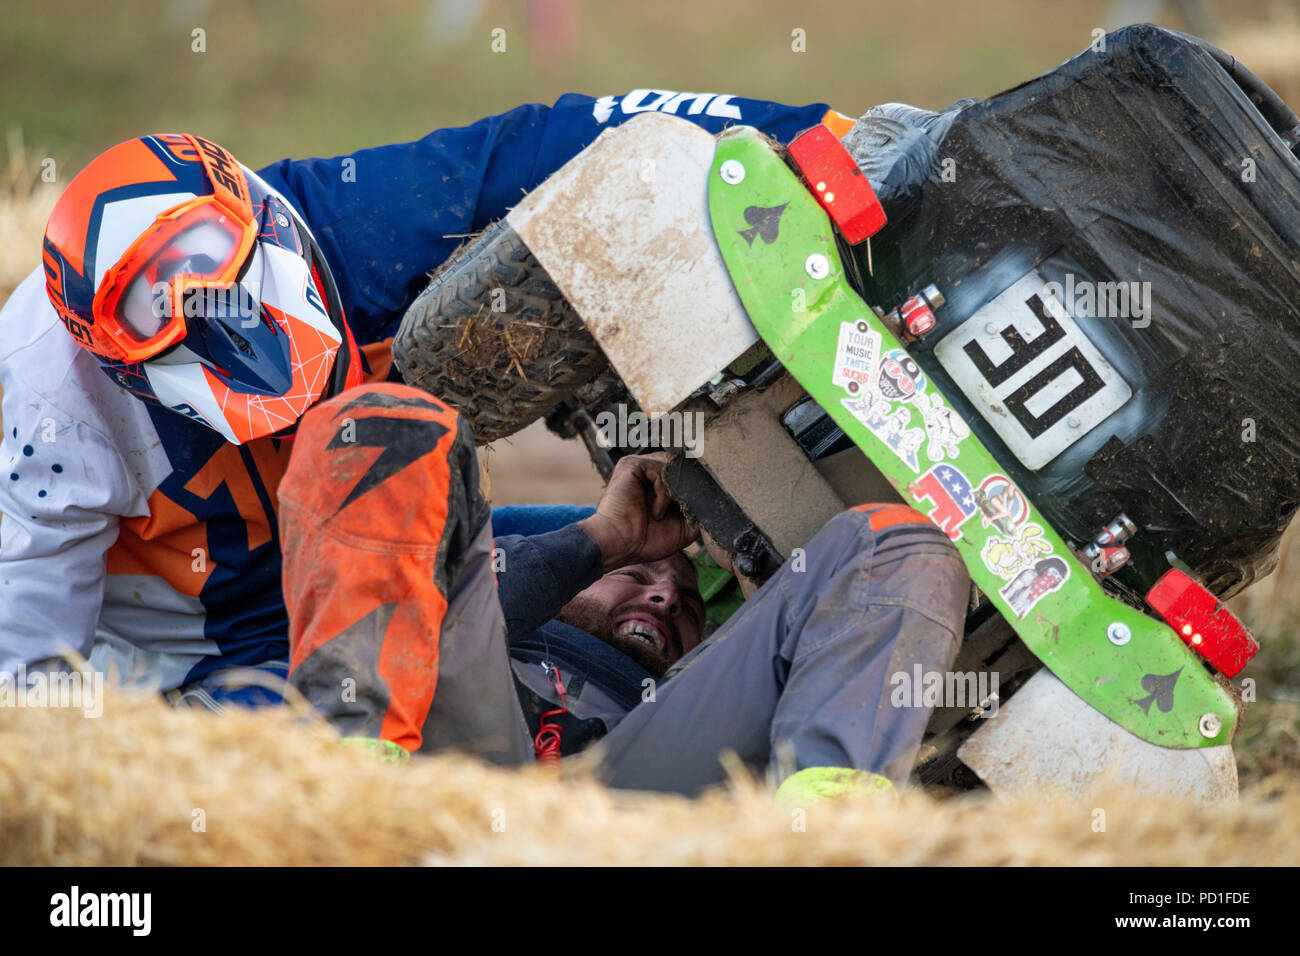 The 12 hour endurance lawnmower race, organised by the British Lawn Mower Racing Association, started at 8pm on Saturday and teams from around the world raced through the night to the finish line at 8am Sunday morning. Credit: Richard Grange/Alamy Live News - Stock Image